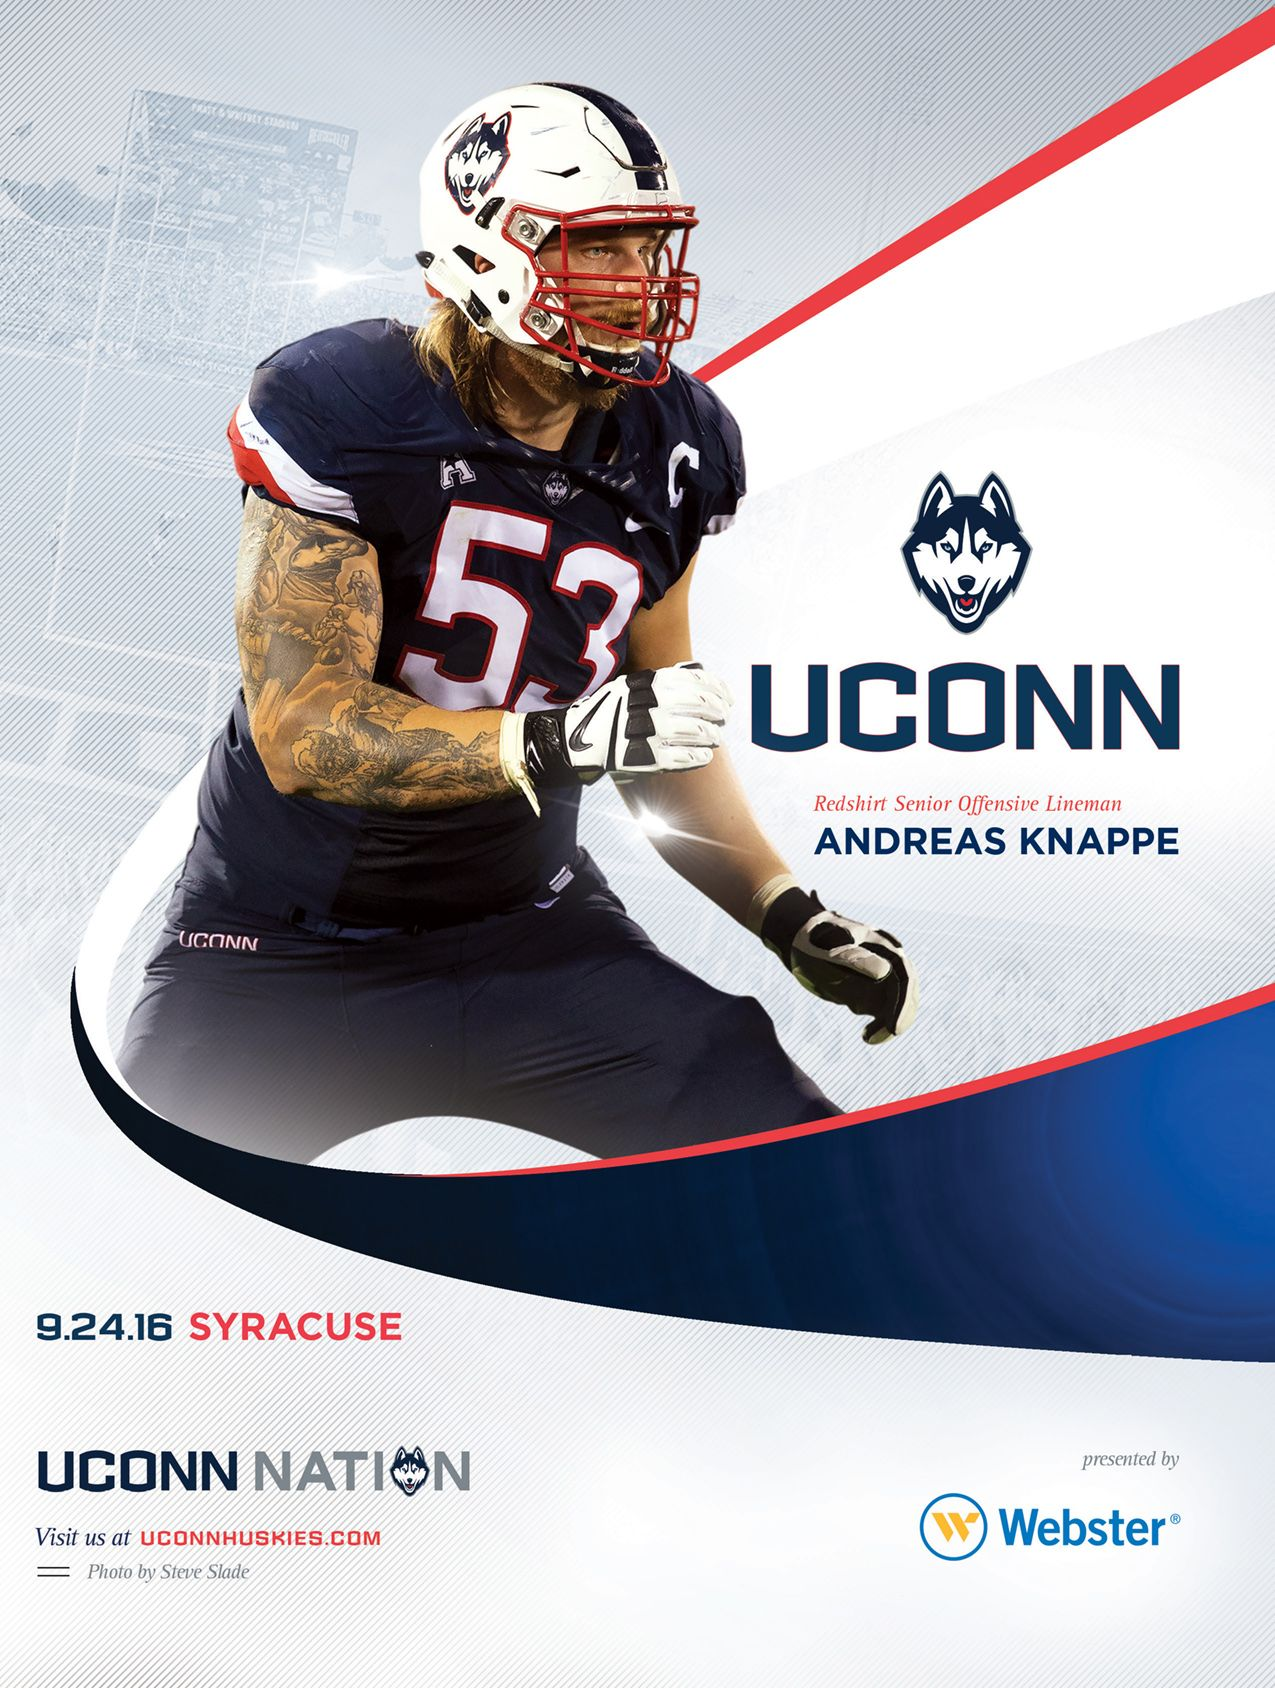 The 2016 Uconnhuskies Football Roster Card Vs Syracuse Features Andreas Knappe On Its Cover Uconnnation Uconn Football Roster Uconn Huskies